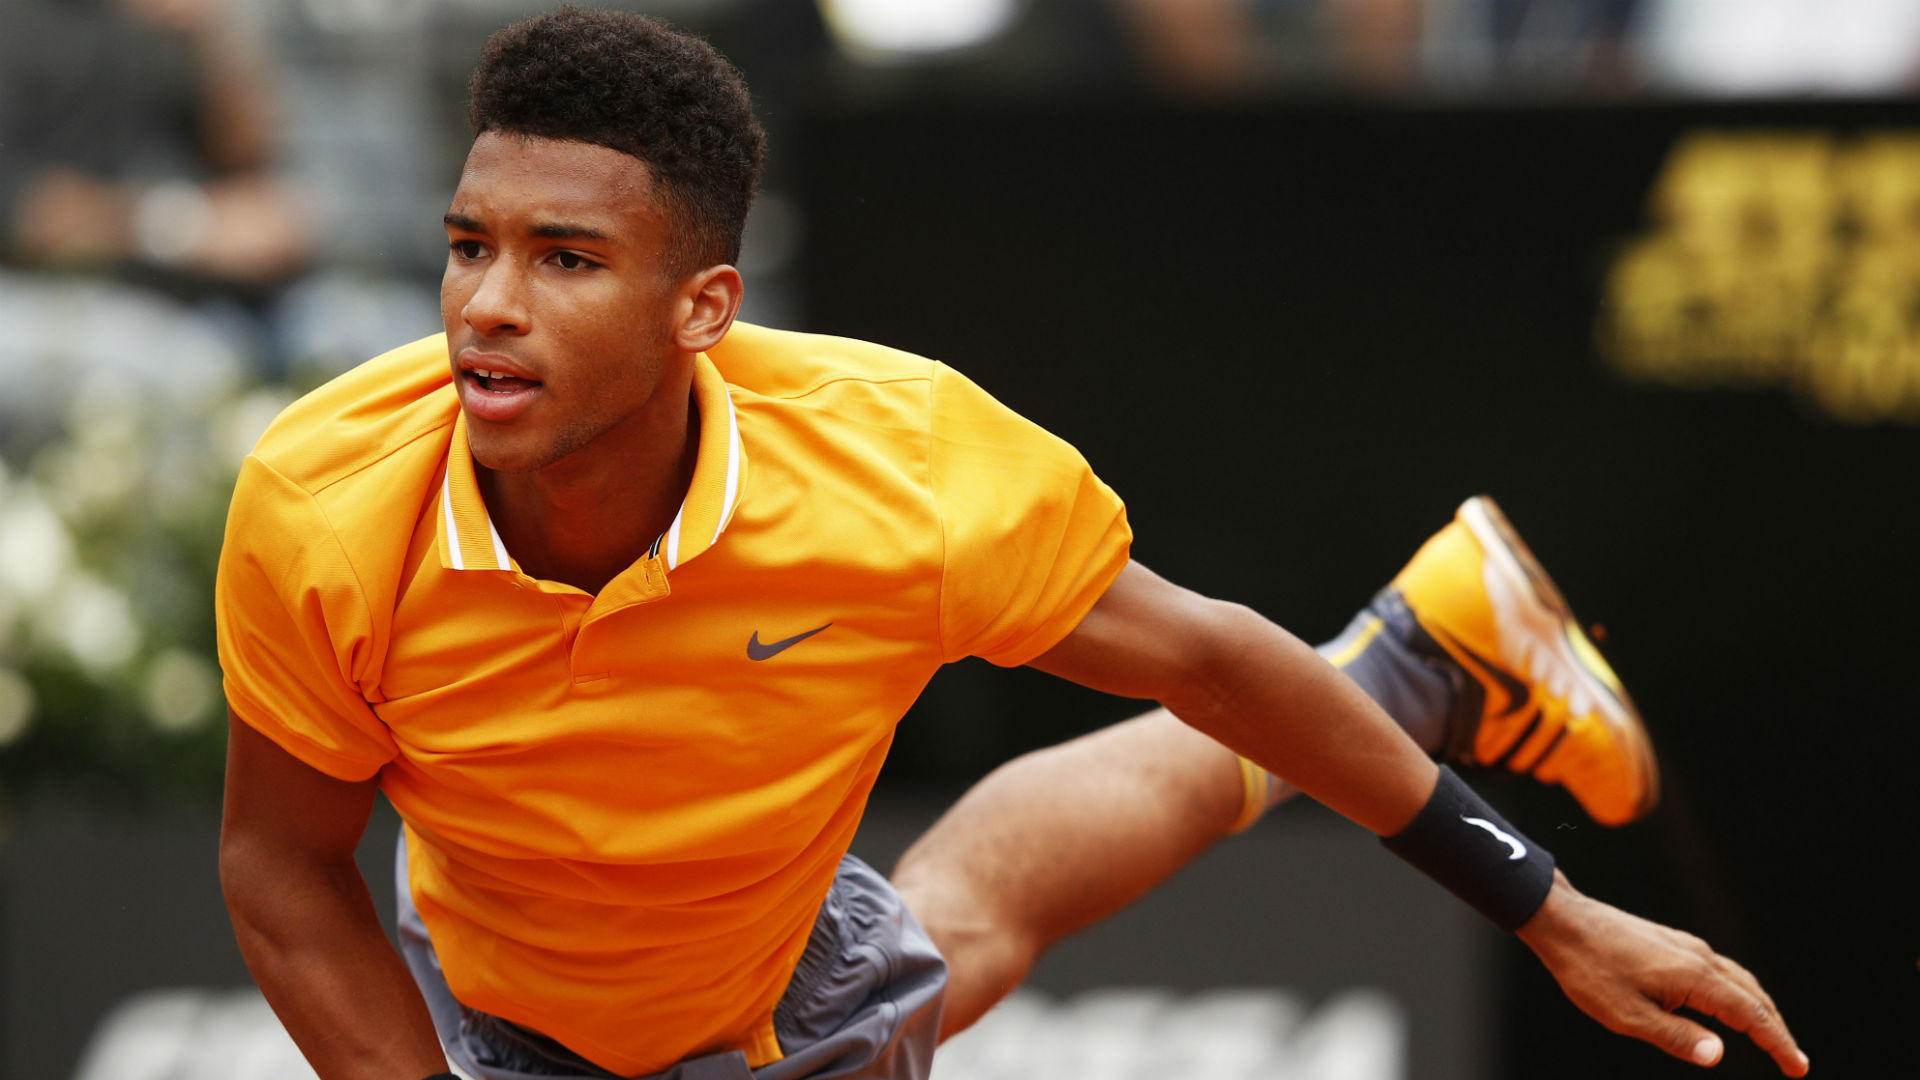 Making his grass-court debut on the ATP Tour, Canadian teenager Felix Auger-Aliassime was far too good for Ernests Gulbis.